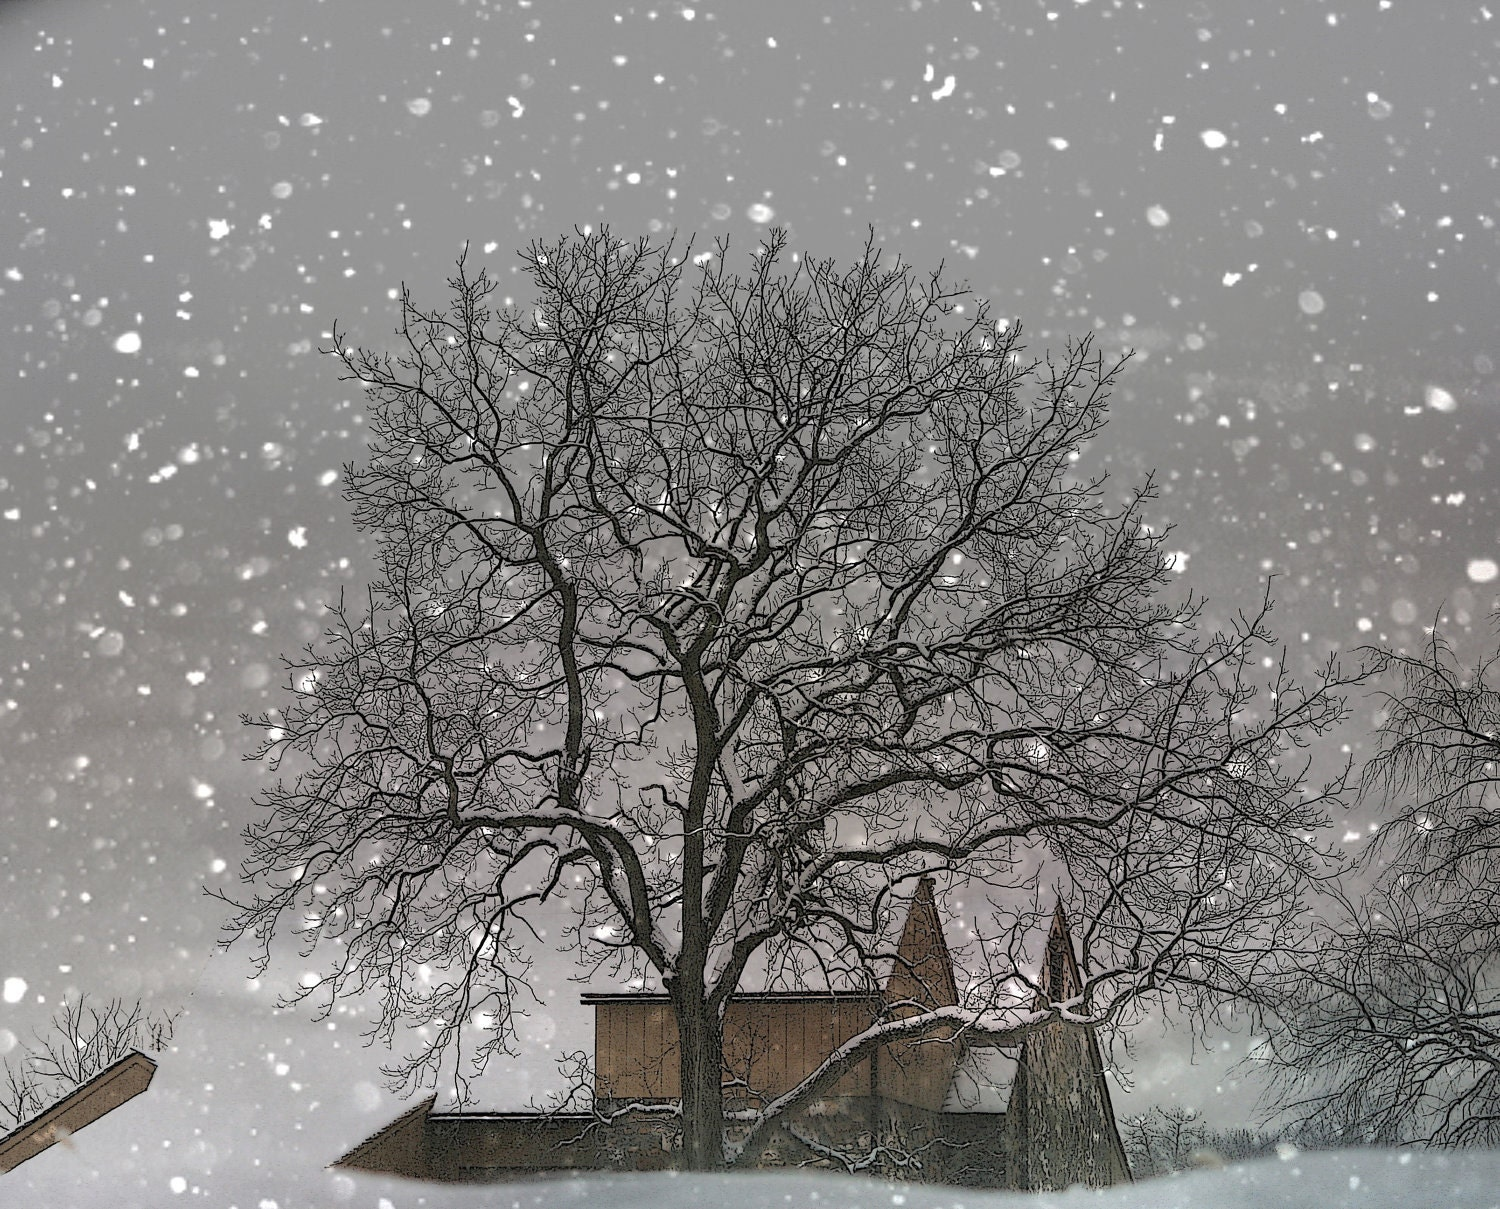 Desigrans Ideas: Winter Photography white tree barn snow ... Pictures Trees In Winter Pinterest